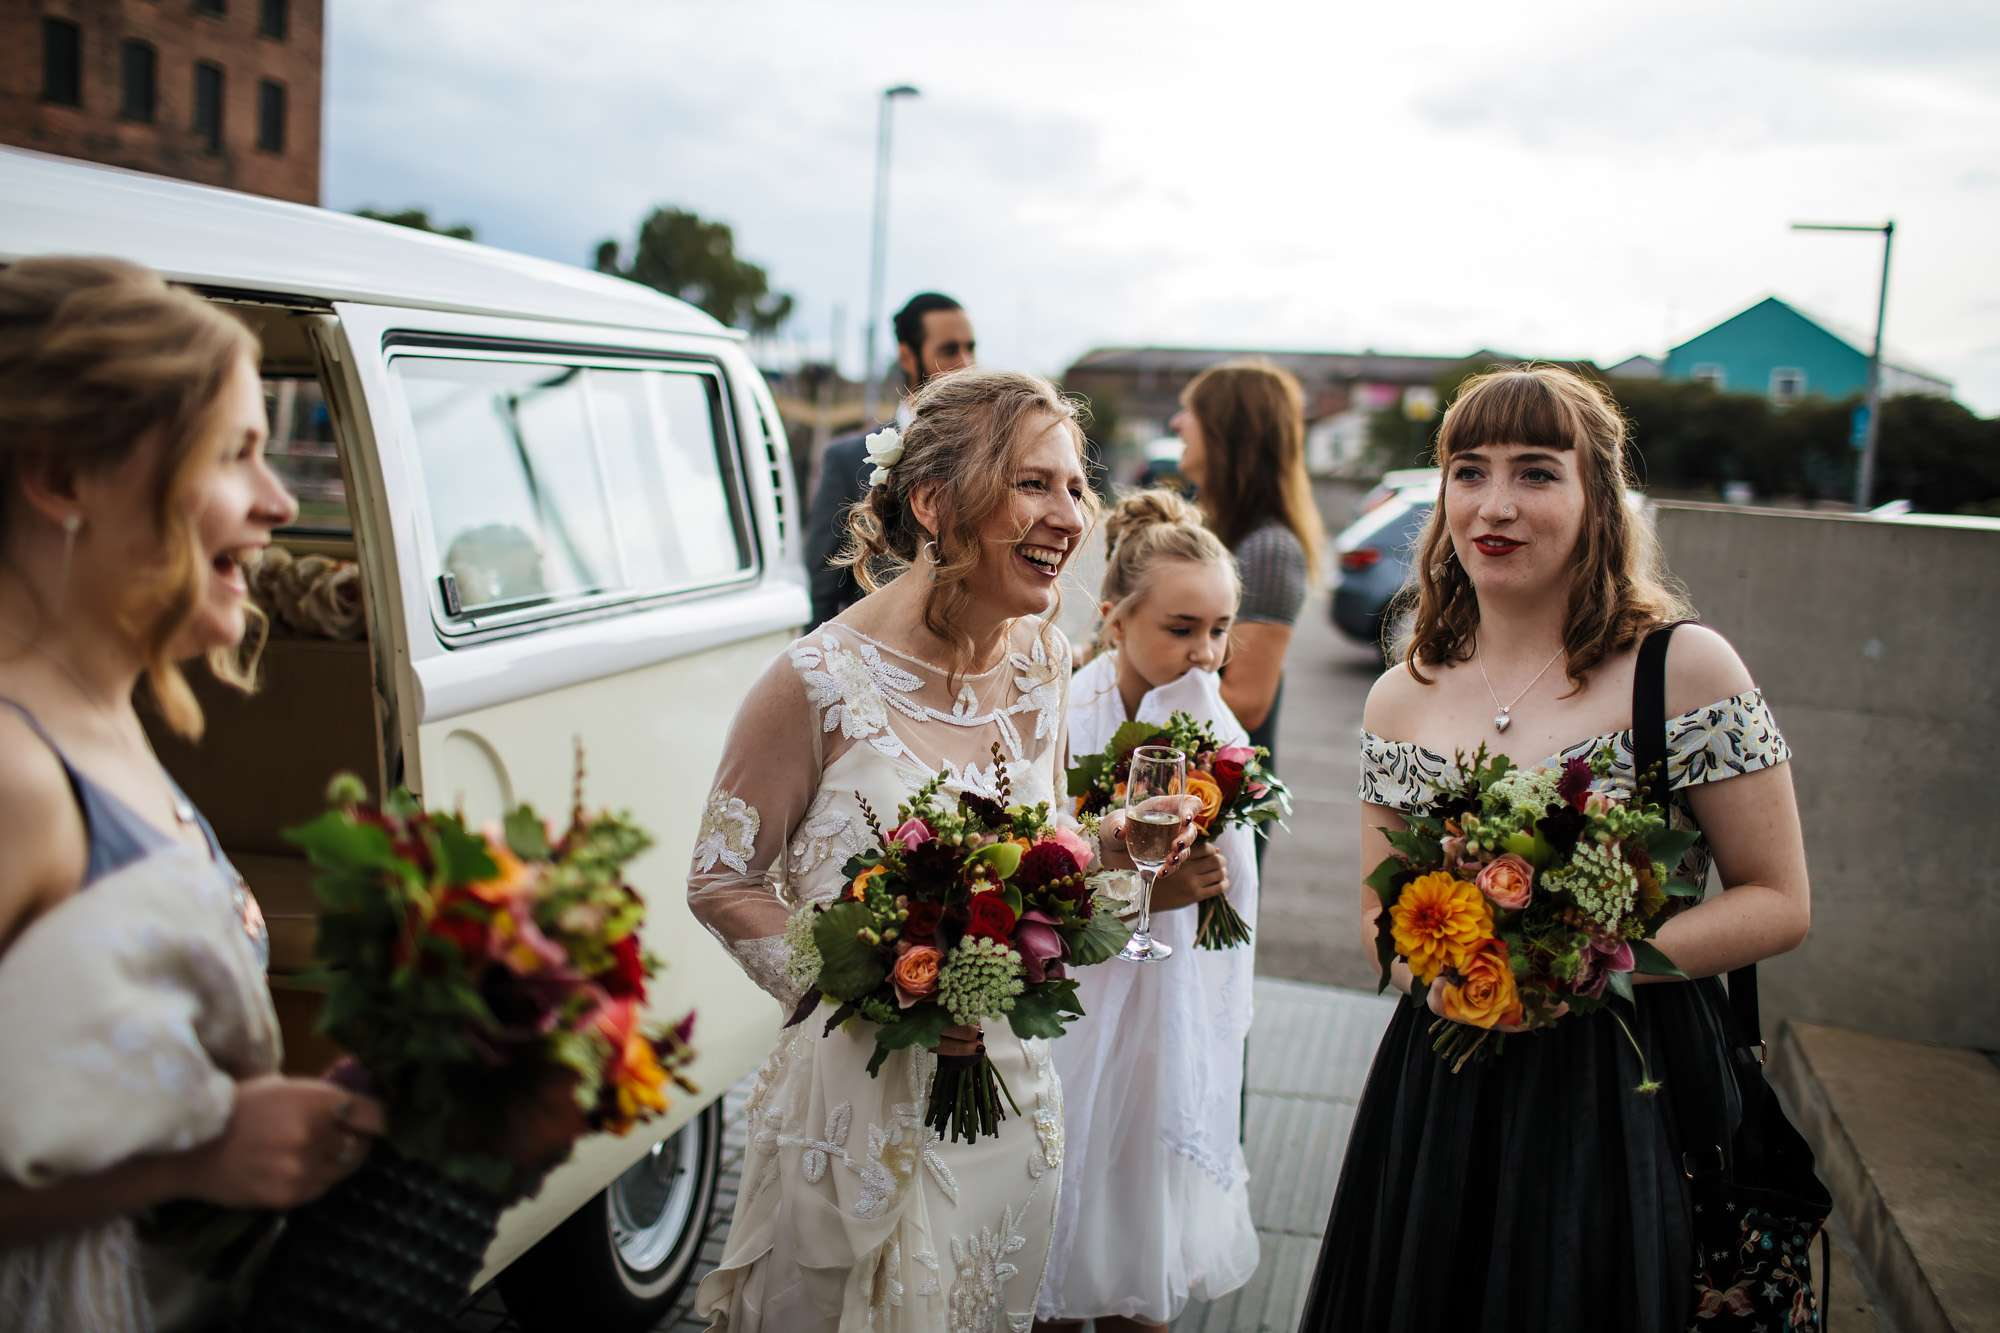 Bride and her bridesmaids arrive at Hepworth Art Gallery